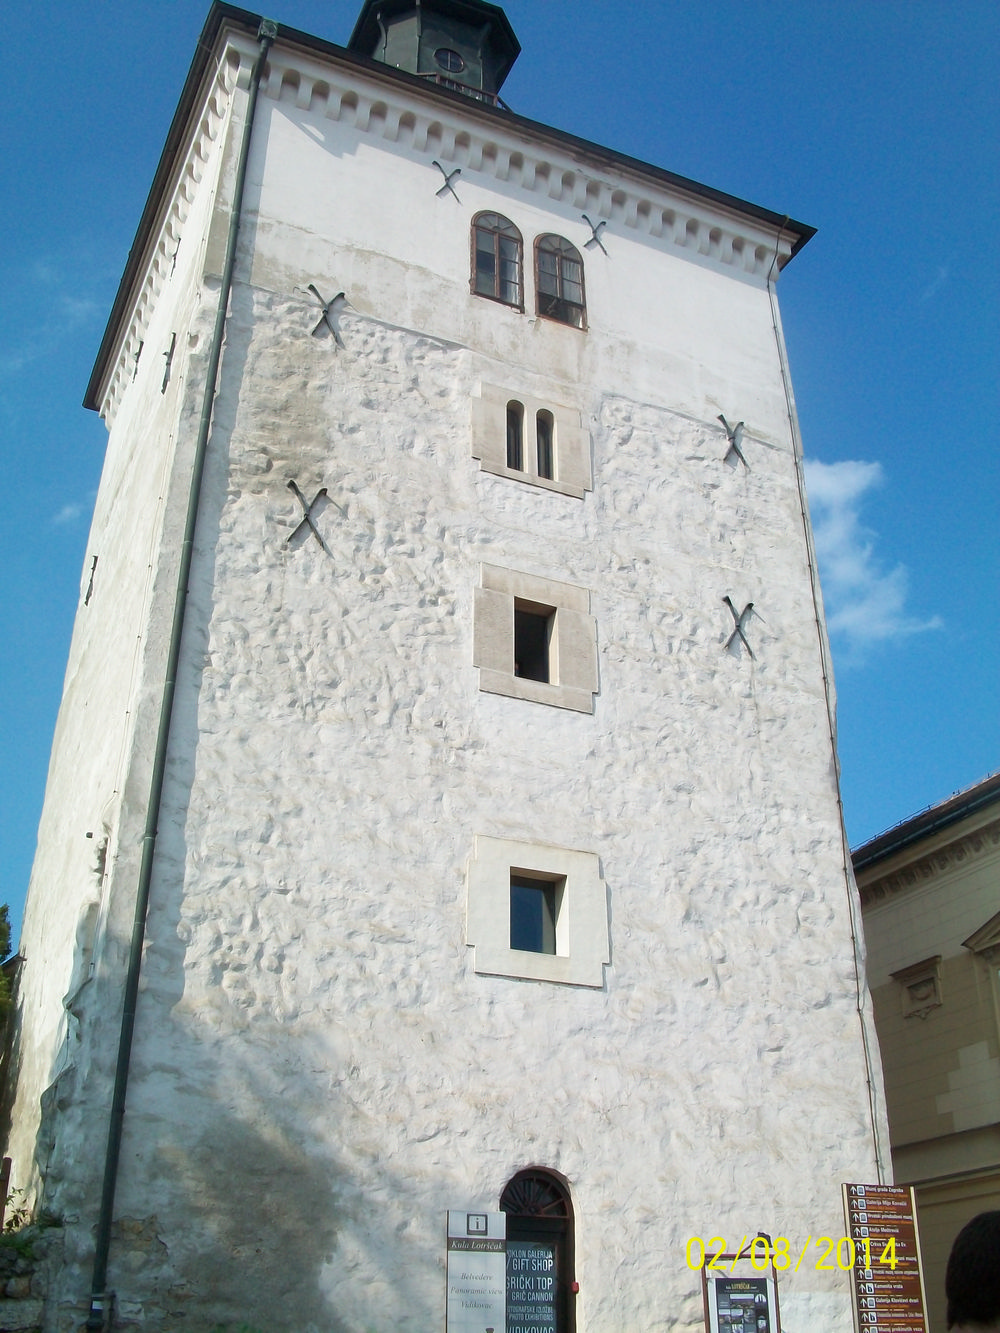 Lotršćak tower